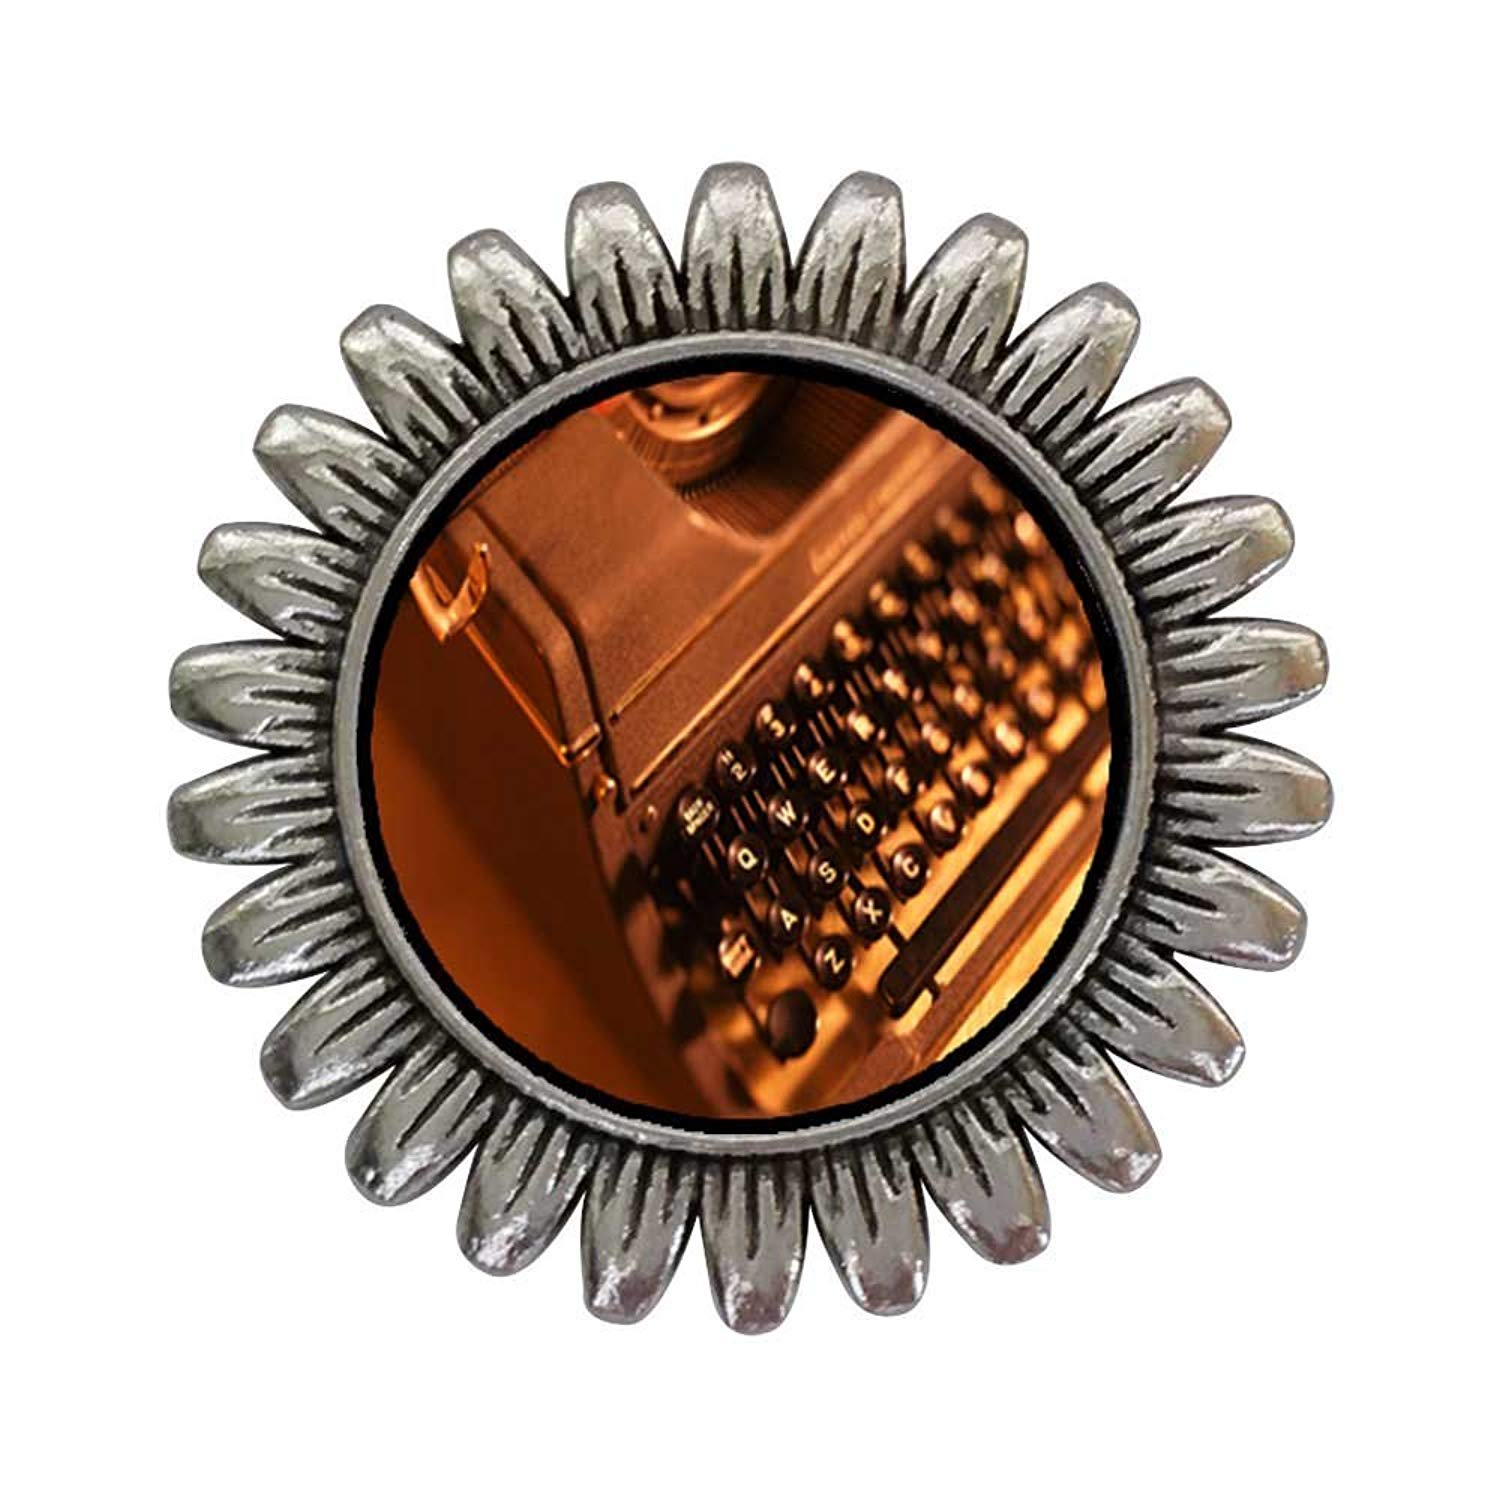 GiftJewelryShop Ancient Style Silver Plate Book Writer's Typewriter Sunflower Pins Brooch